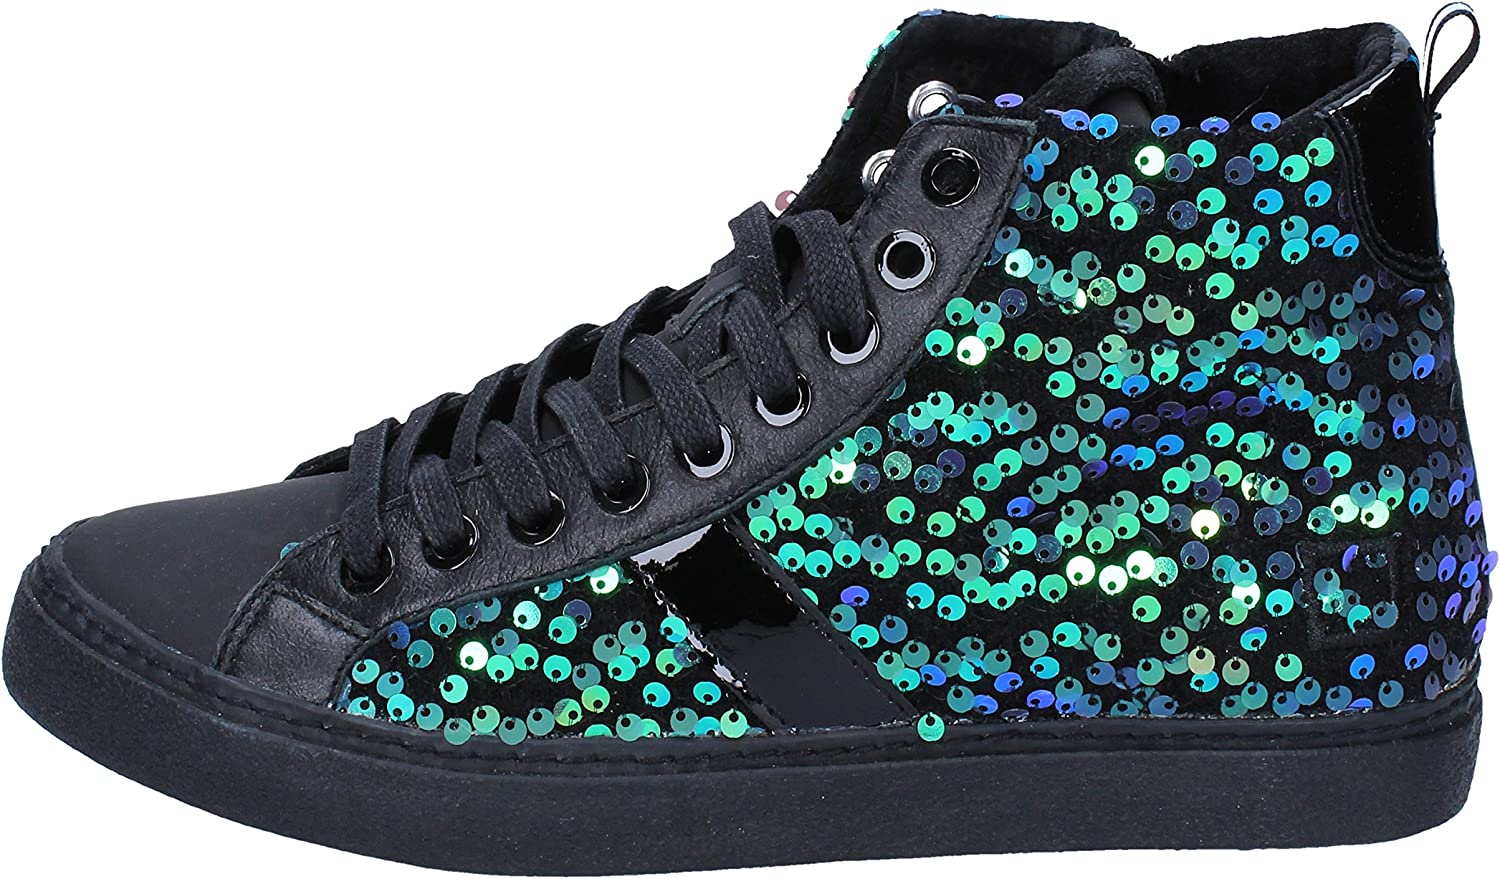 D.A.T.E. (DATE) Fashion-Sneakers Womens Black